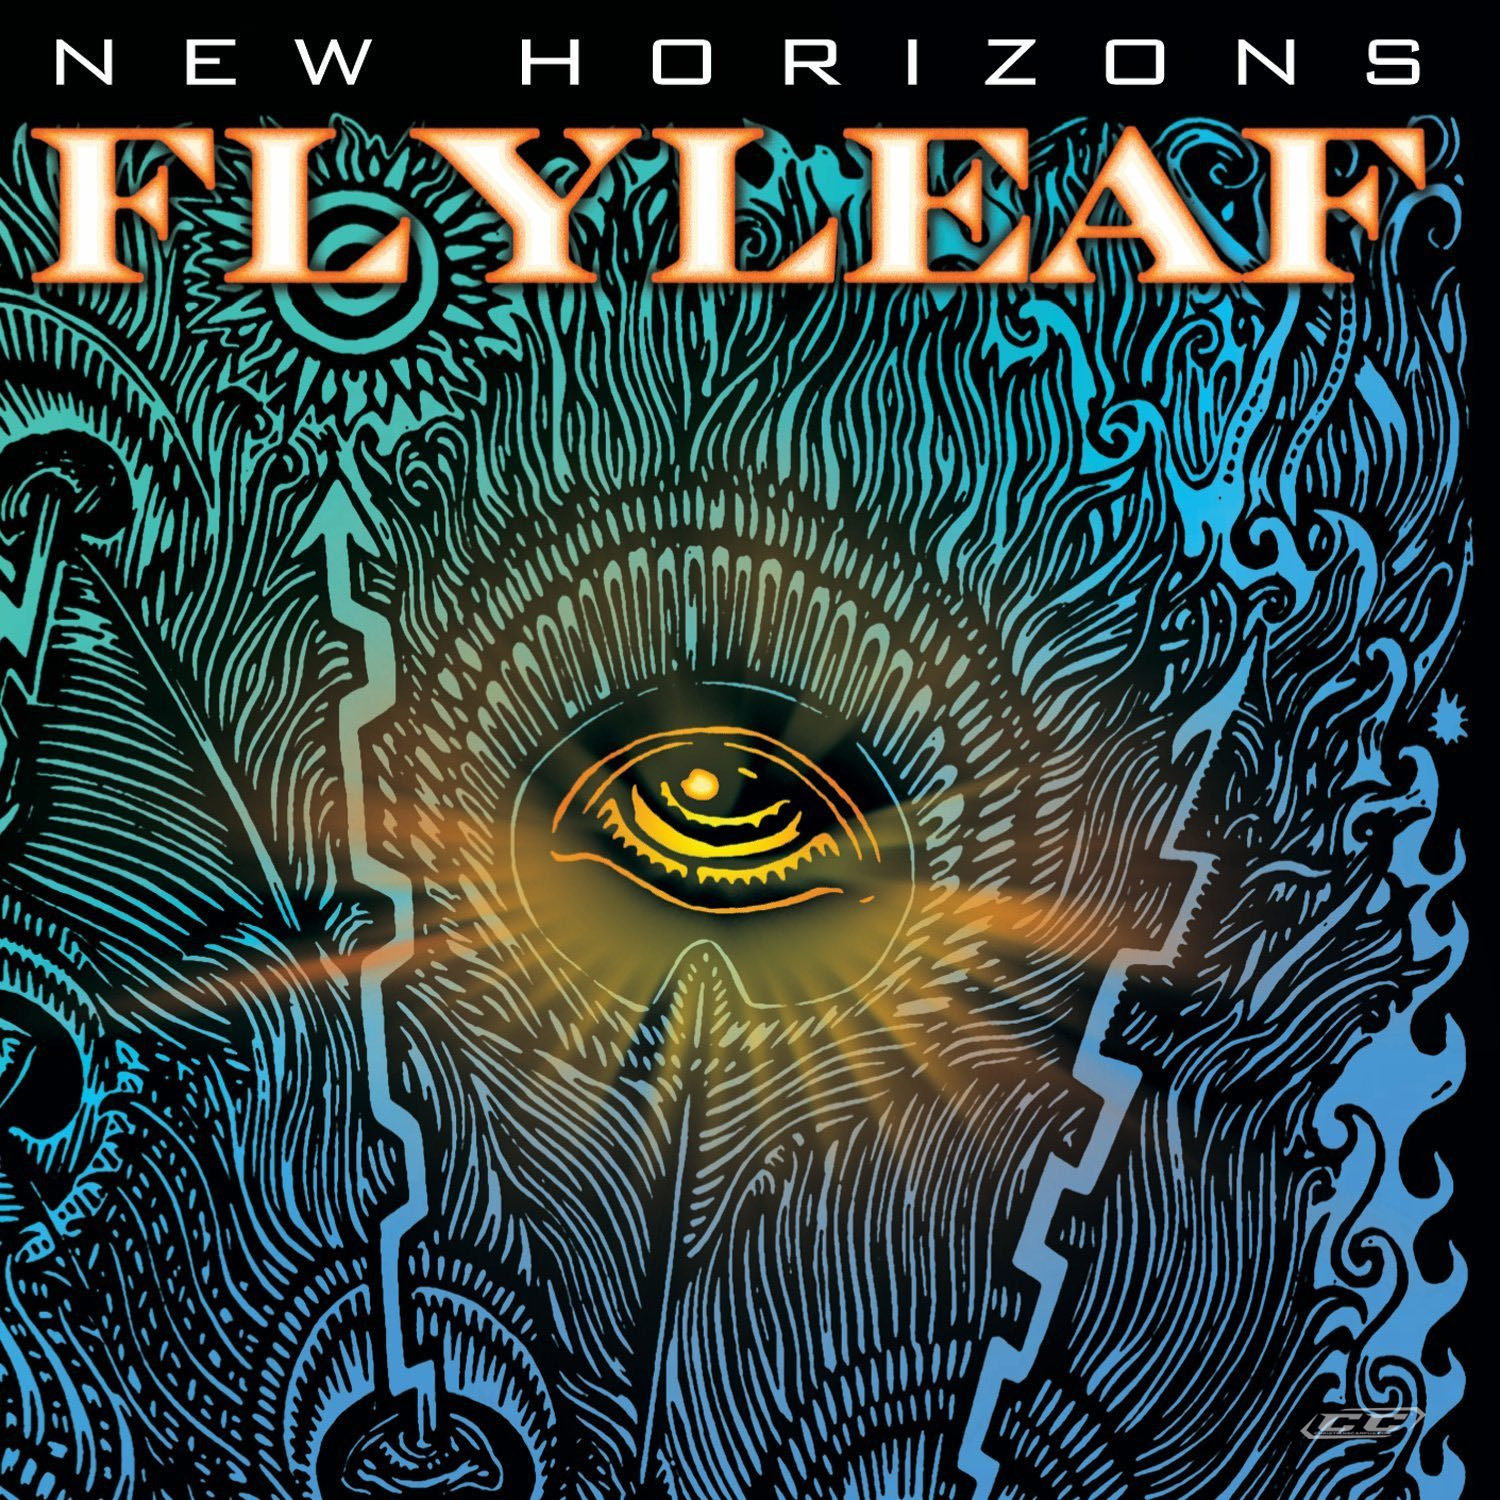 Flyleaf - New Horizons 2012 English Christian Album Download